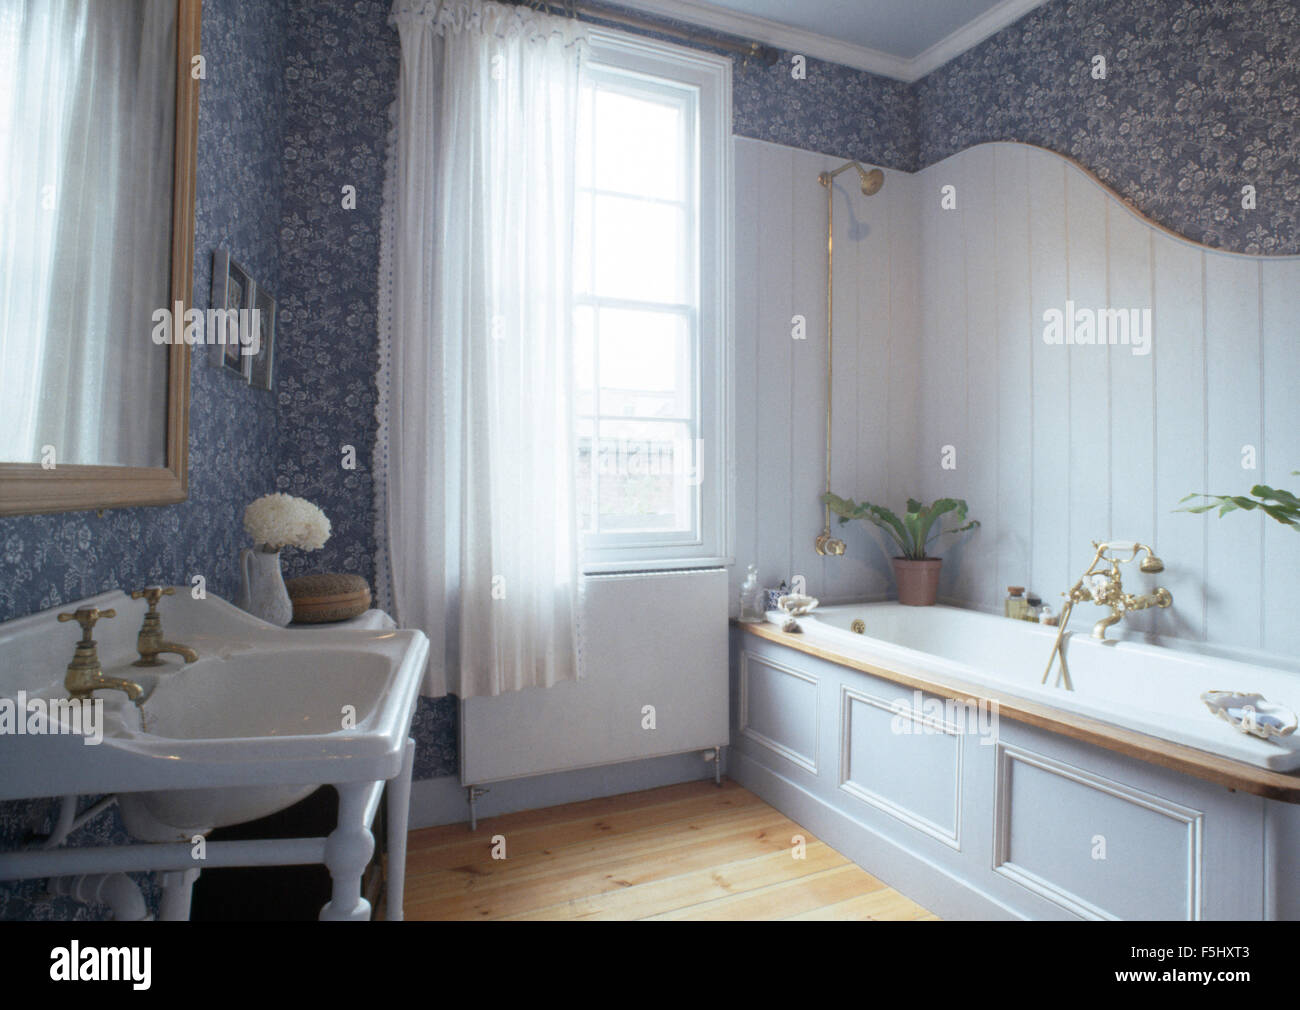 Tongue and groove for bathrooms - White Tongue Groove Panelling Above Bath In Seventies Bathroom With Blue Floral Wallpaper Stock